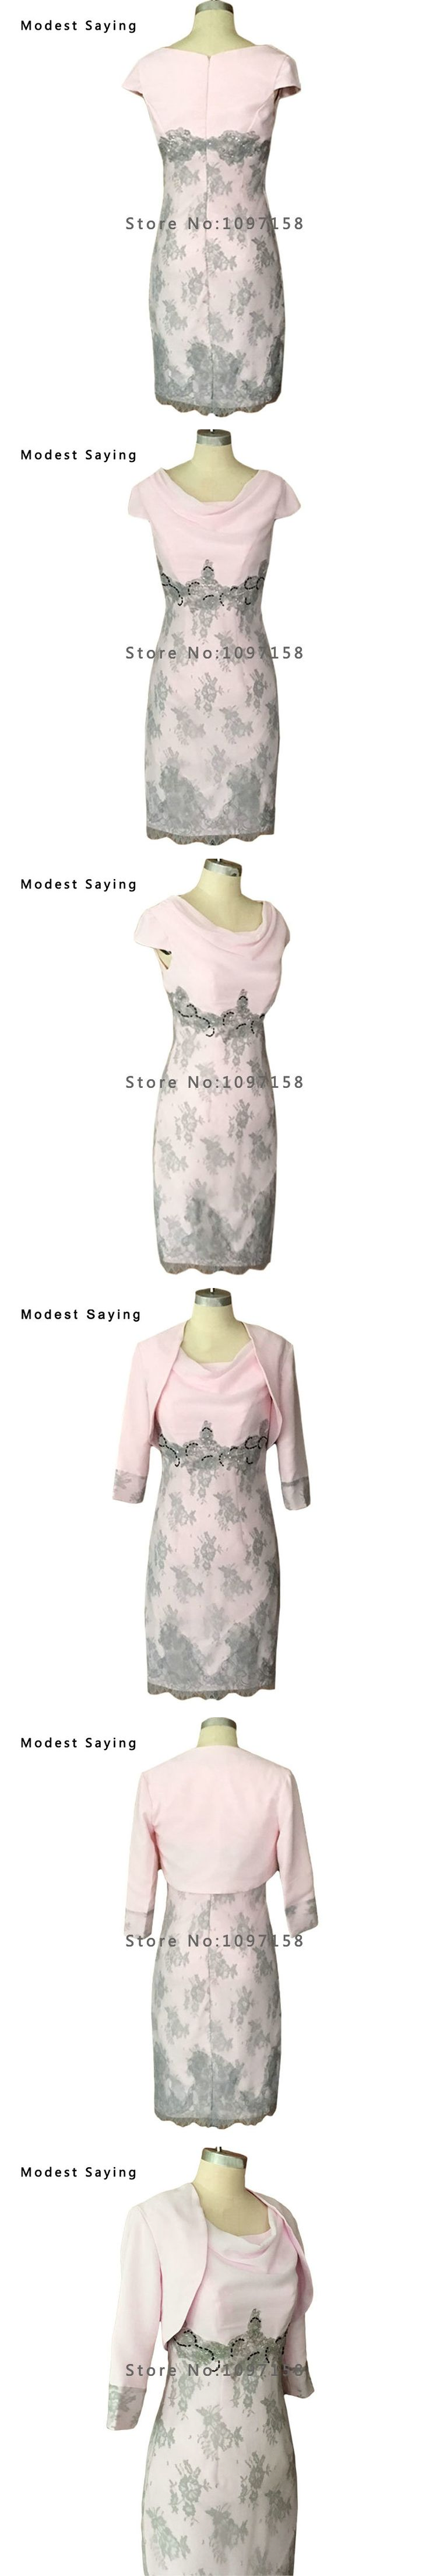 Modest Pink Chiffon Beaded Lace Mother of the Bride Dresses 2017 3/4 Sleeve Jackets Knee Length Prom Gowns robes de soiree DM4